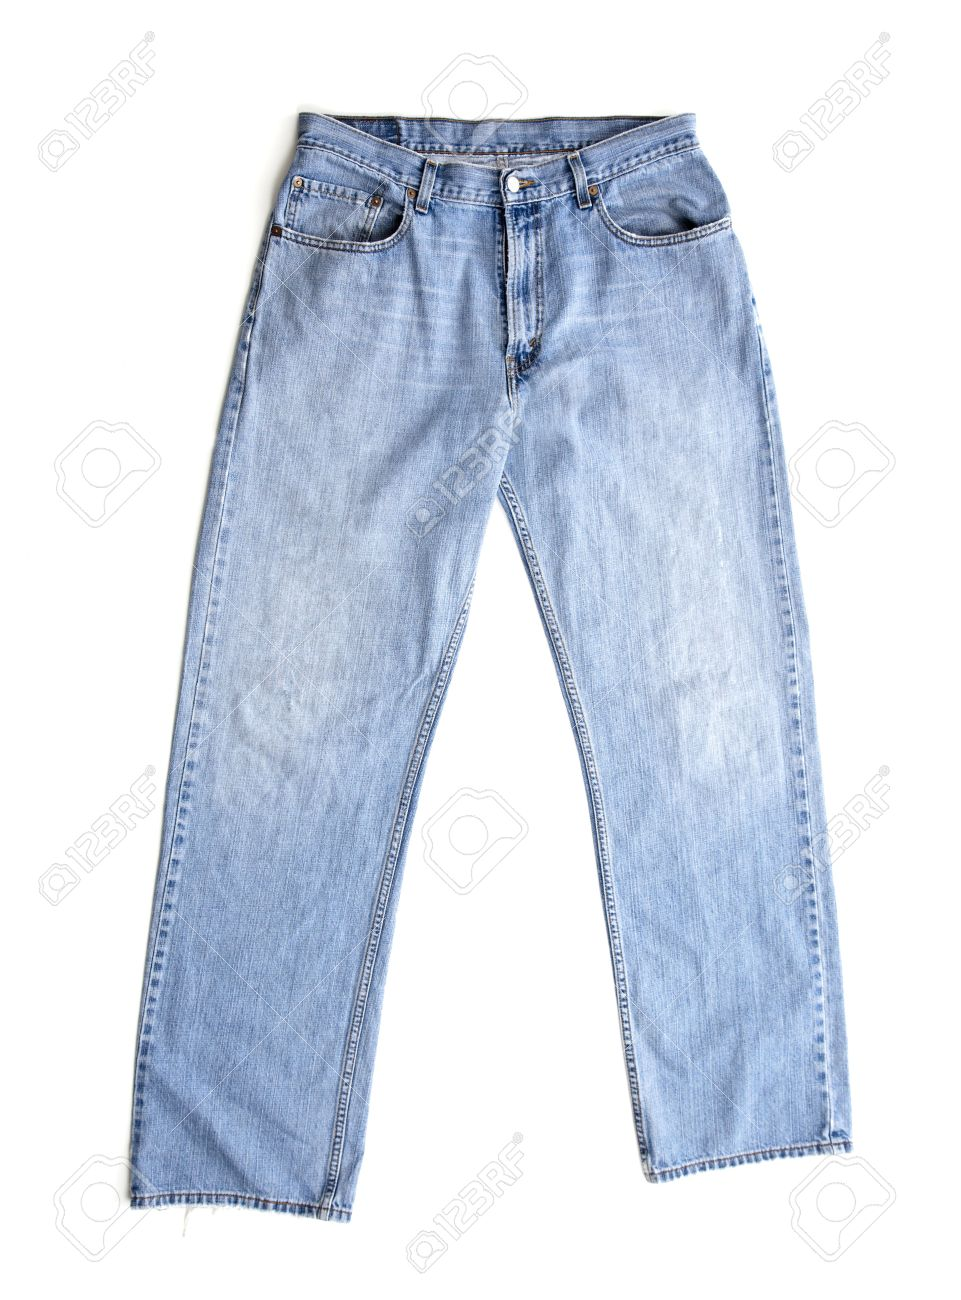 hot sale half off official store A pair of old blue denim jeans on a white background, clothing..